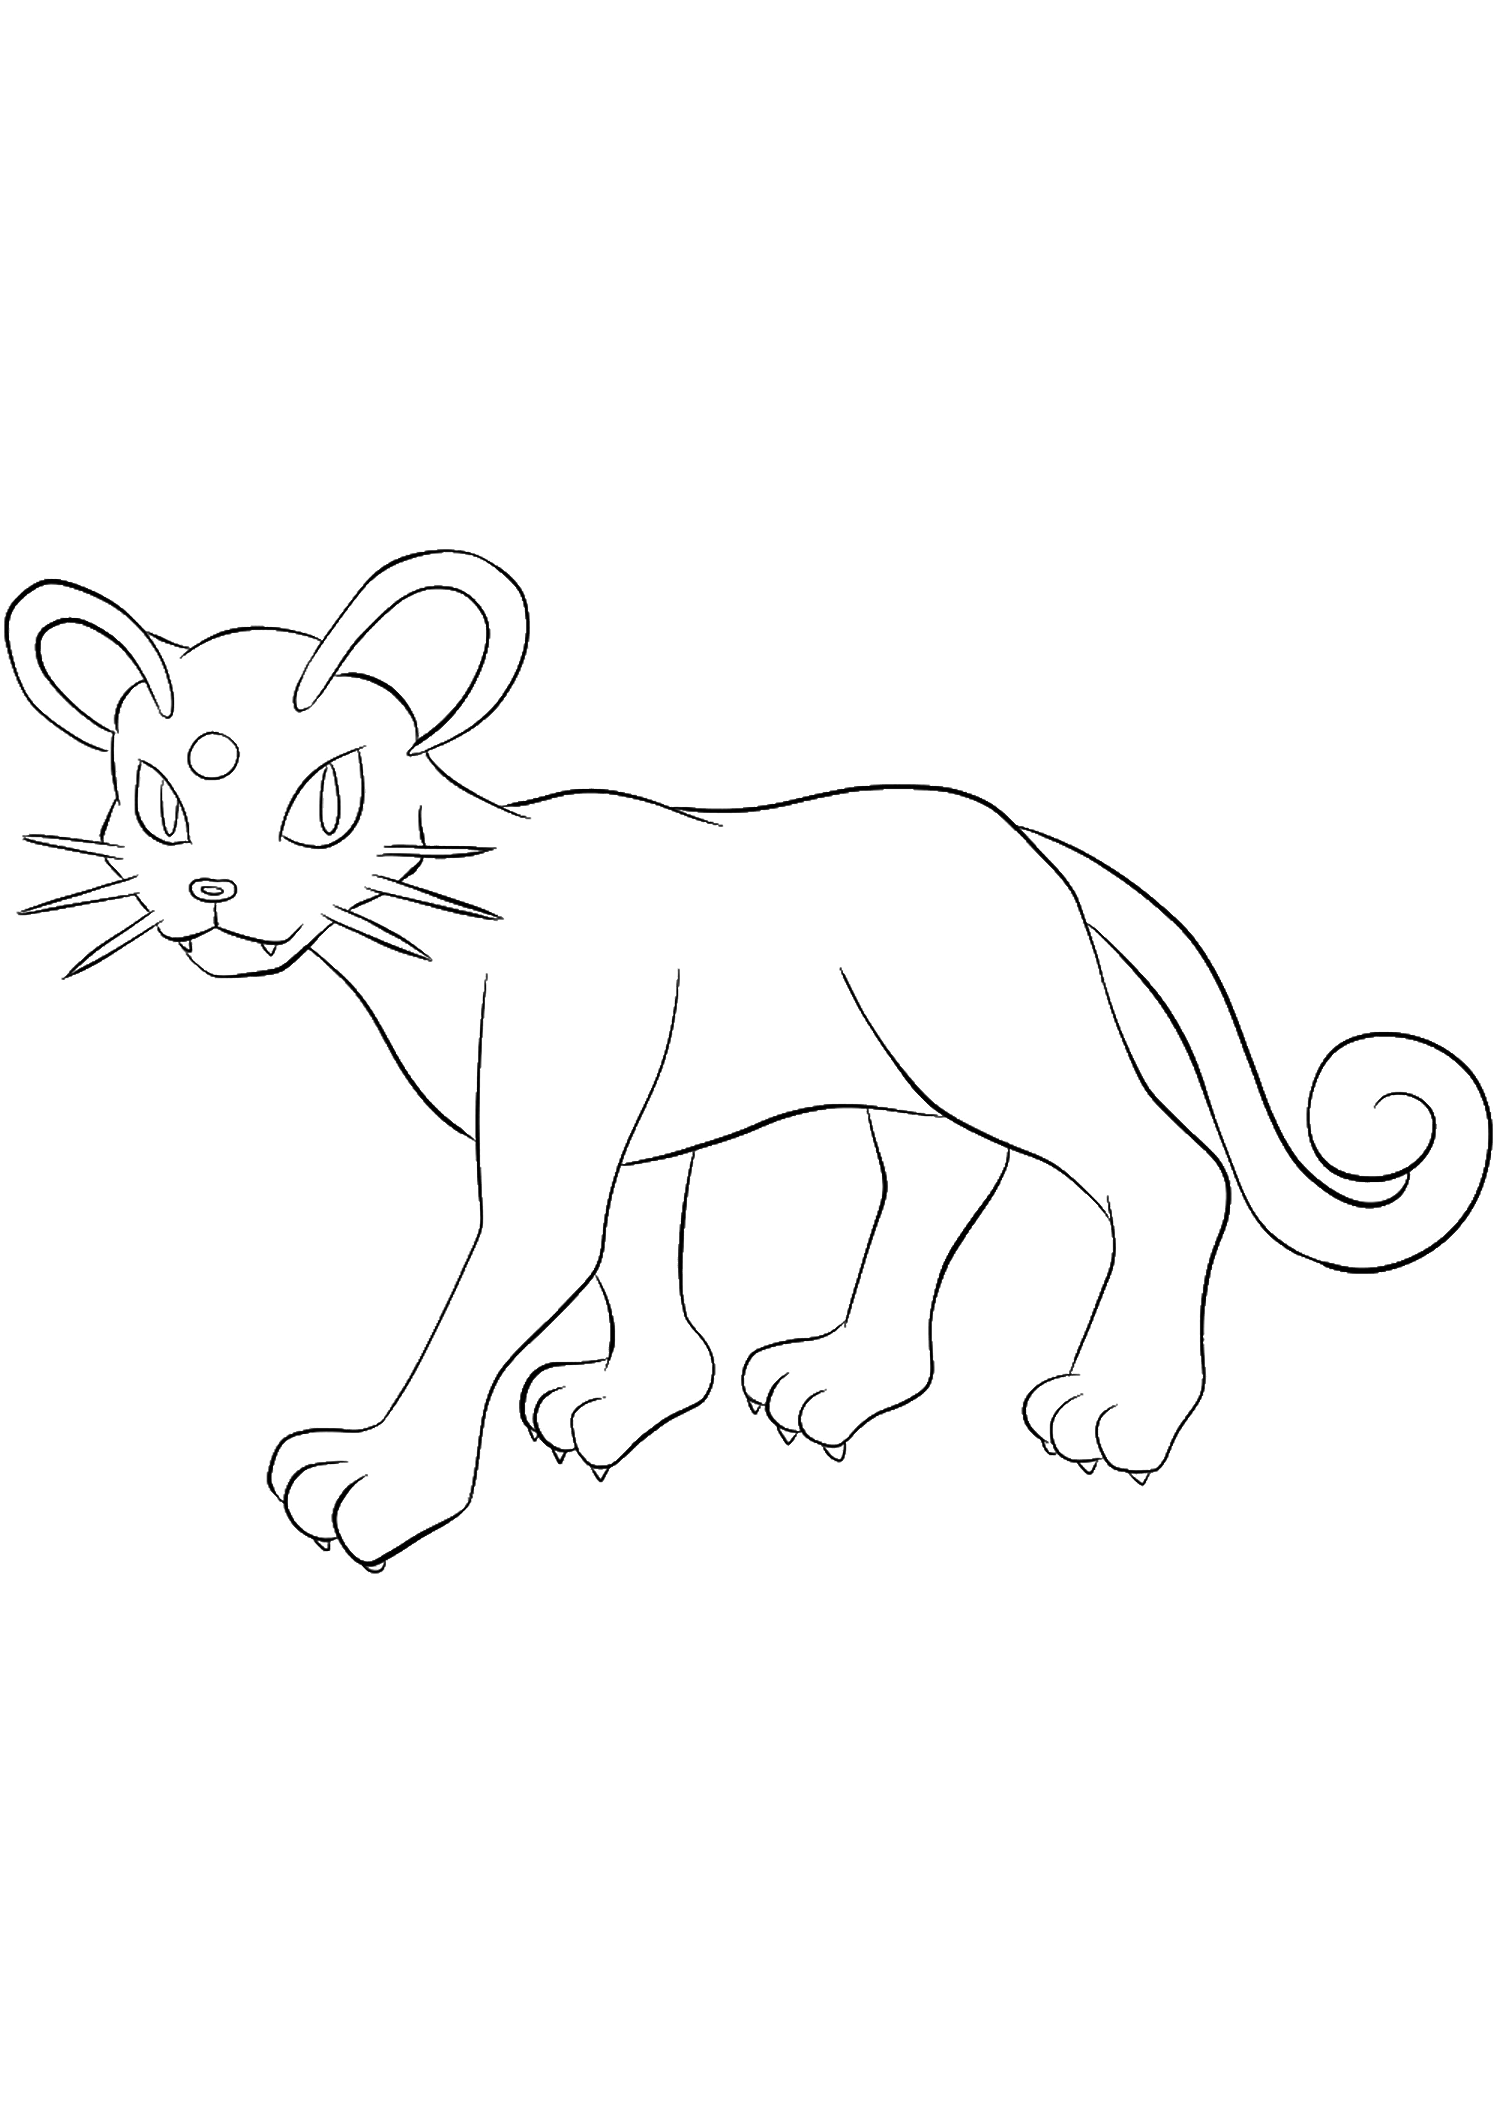 Persian (No.53)Coloriage de Persian (Persian), Pokémon de Génération I, de type : TénèbresOriginal image credit: Pokemon linearts by Lilly Gerbil on Deviantart.Permission:  All rights reserved © Pokemon company and Ken Sugimori.